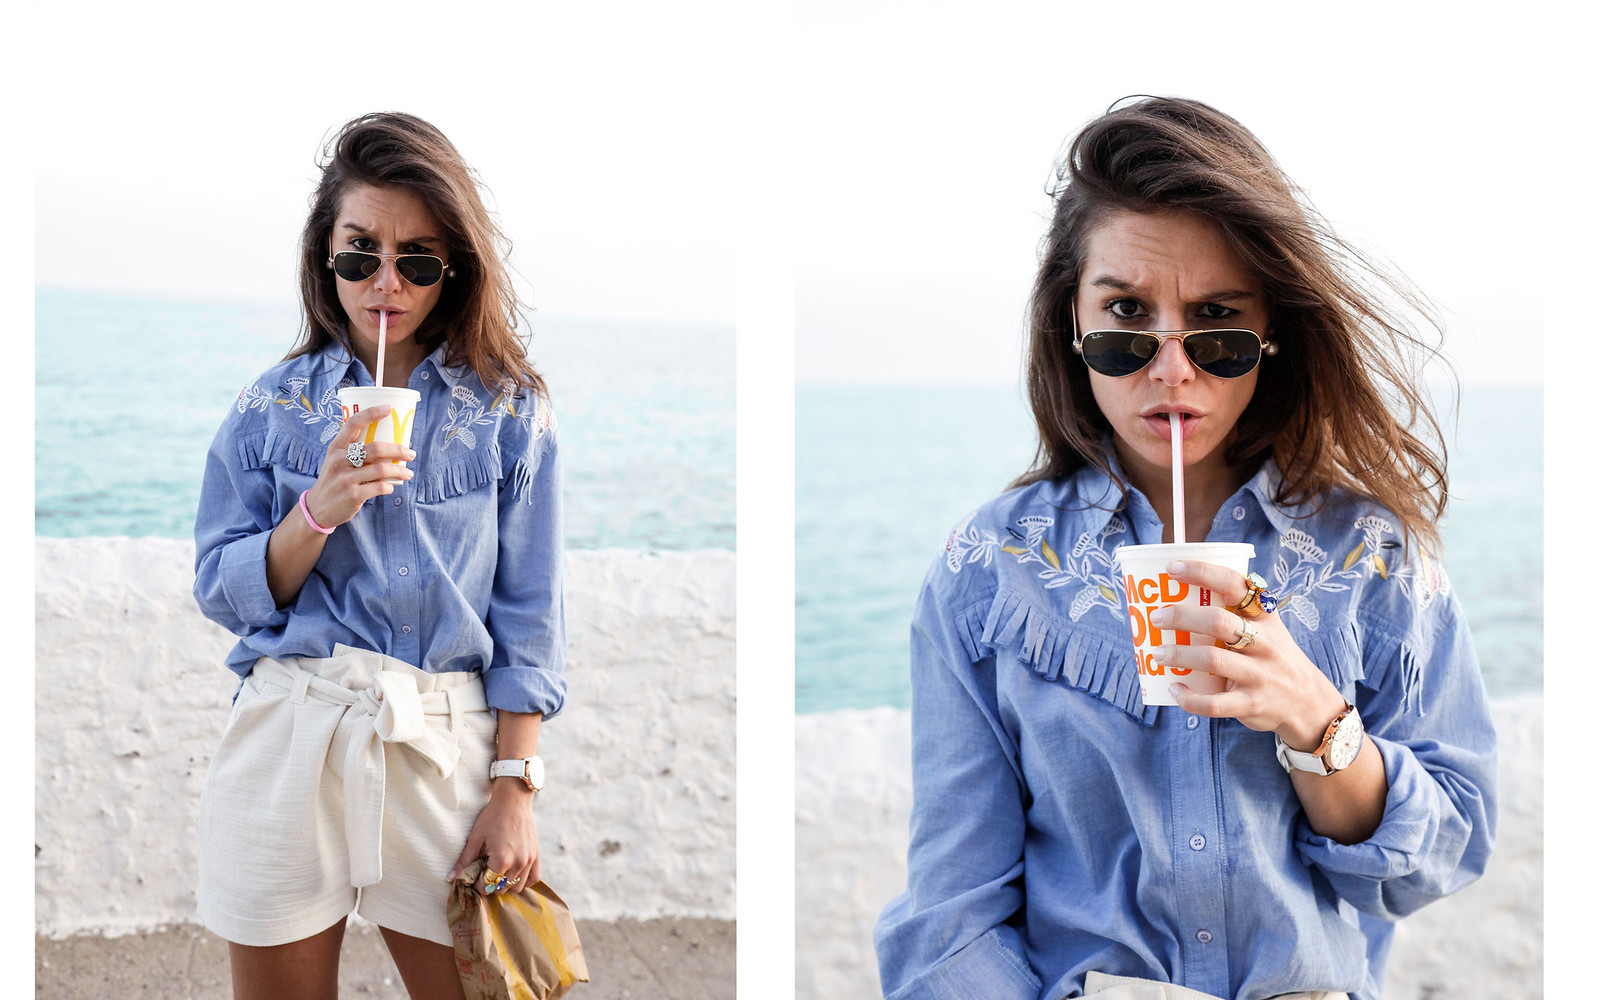 05_camisa_flecos_azul_mysundaymorning_fringed_shirt_fringed_theguestgirl_influencer_inspo_outft_summer_laura_santolaria_public_desire_denim_shoes_mc_donalds